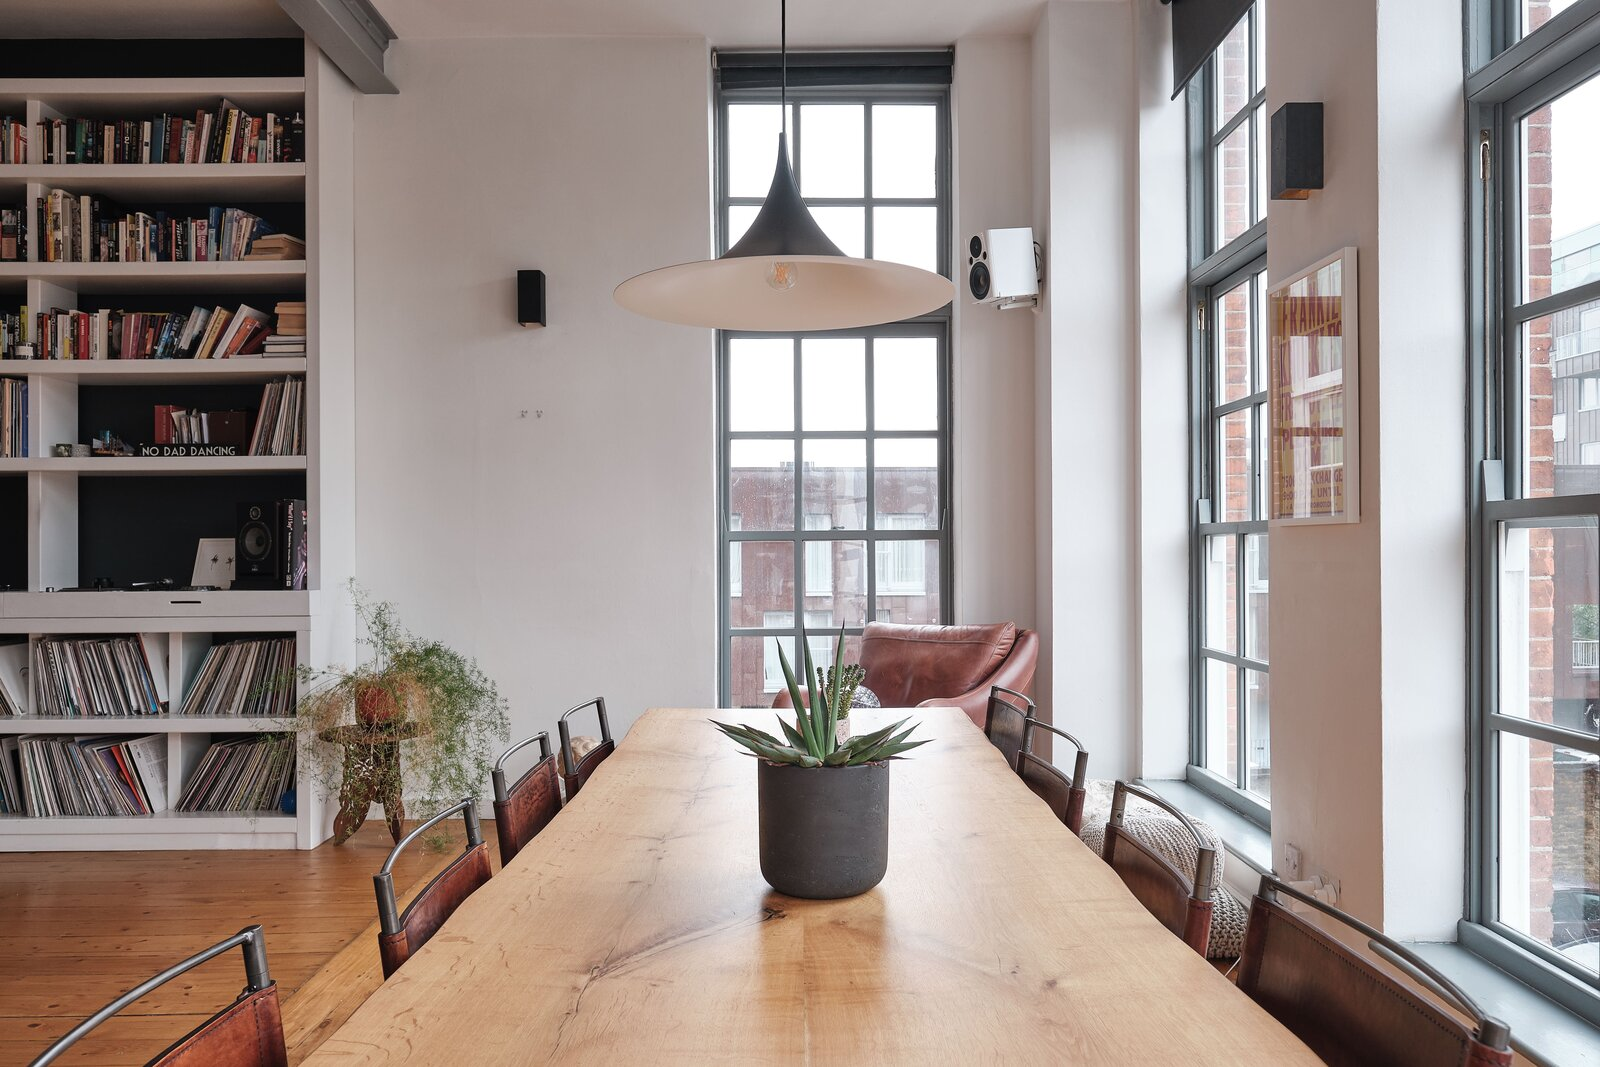 Dining Room, Chair, Medium Hardwood Floor, Table, and Pendant Lighting Another view of the dining area overlooking the building's inner courtyard.  Photo 6 of 13 in For £1.2M, Snag This Spacious London Flat Inside a Converted Victorian Schoolhouse